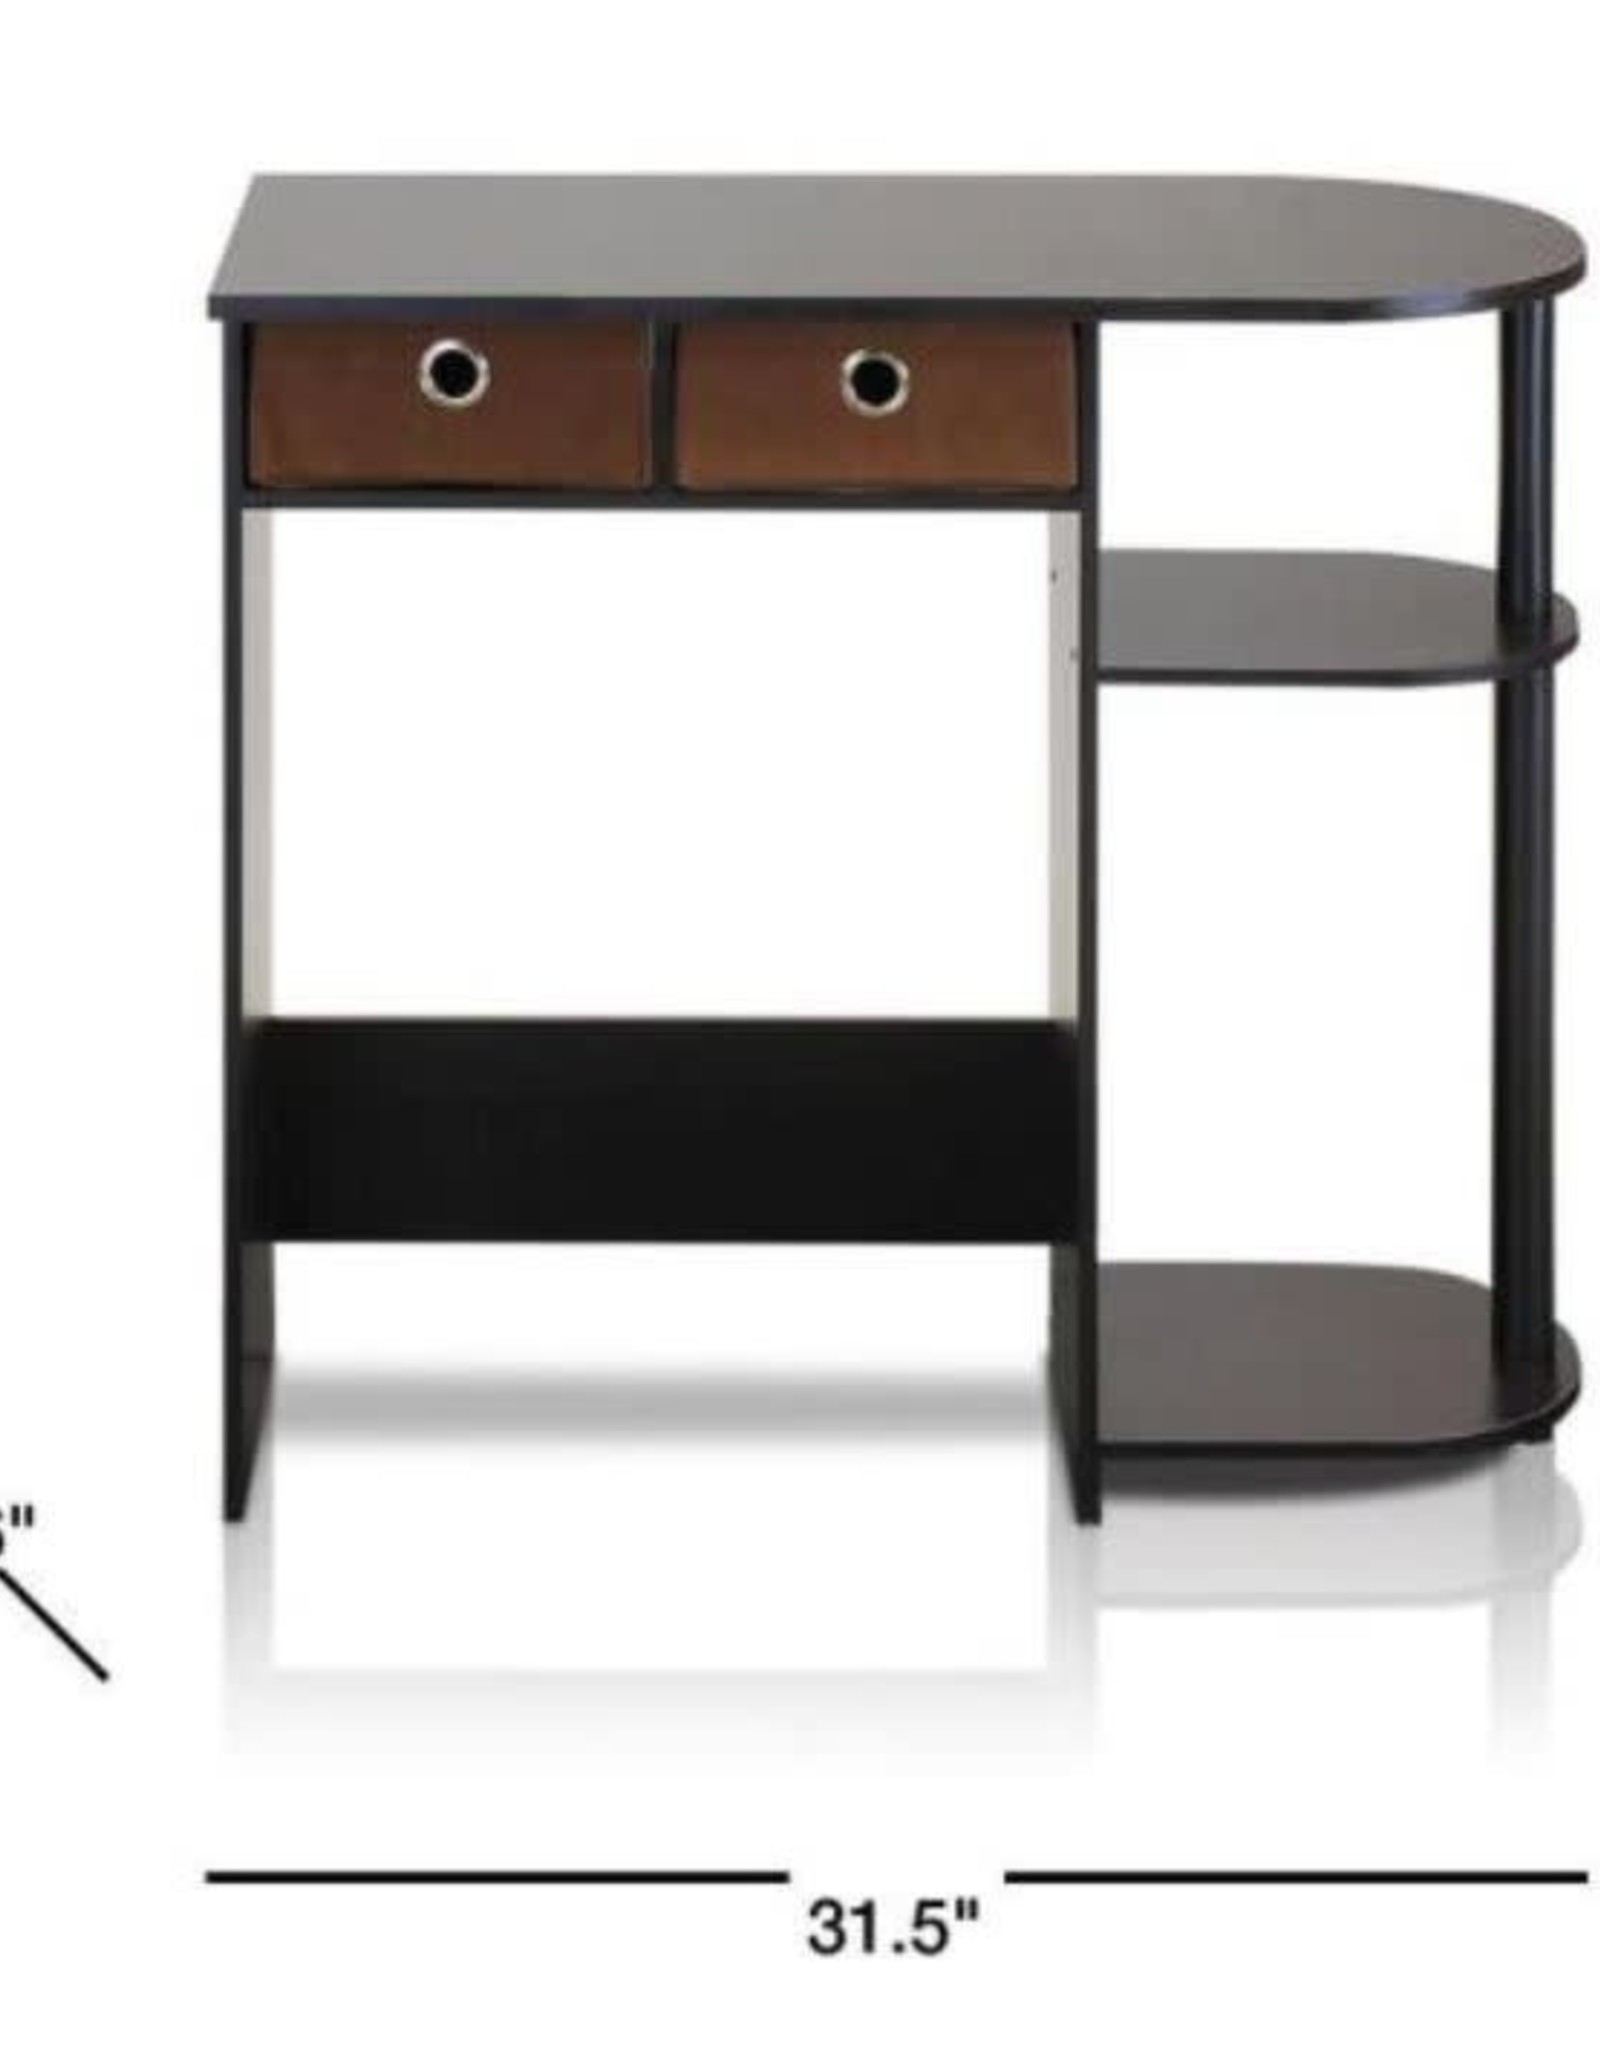 Furrino 32 in. Rectangular Espresso 2 Drawer Computer Desk with Built-In Storage